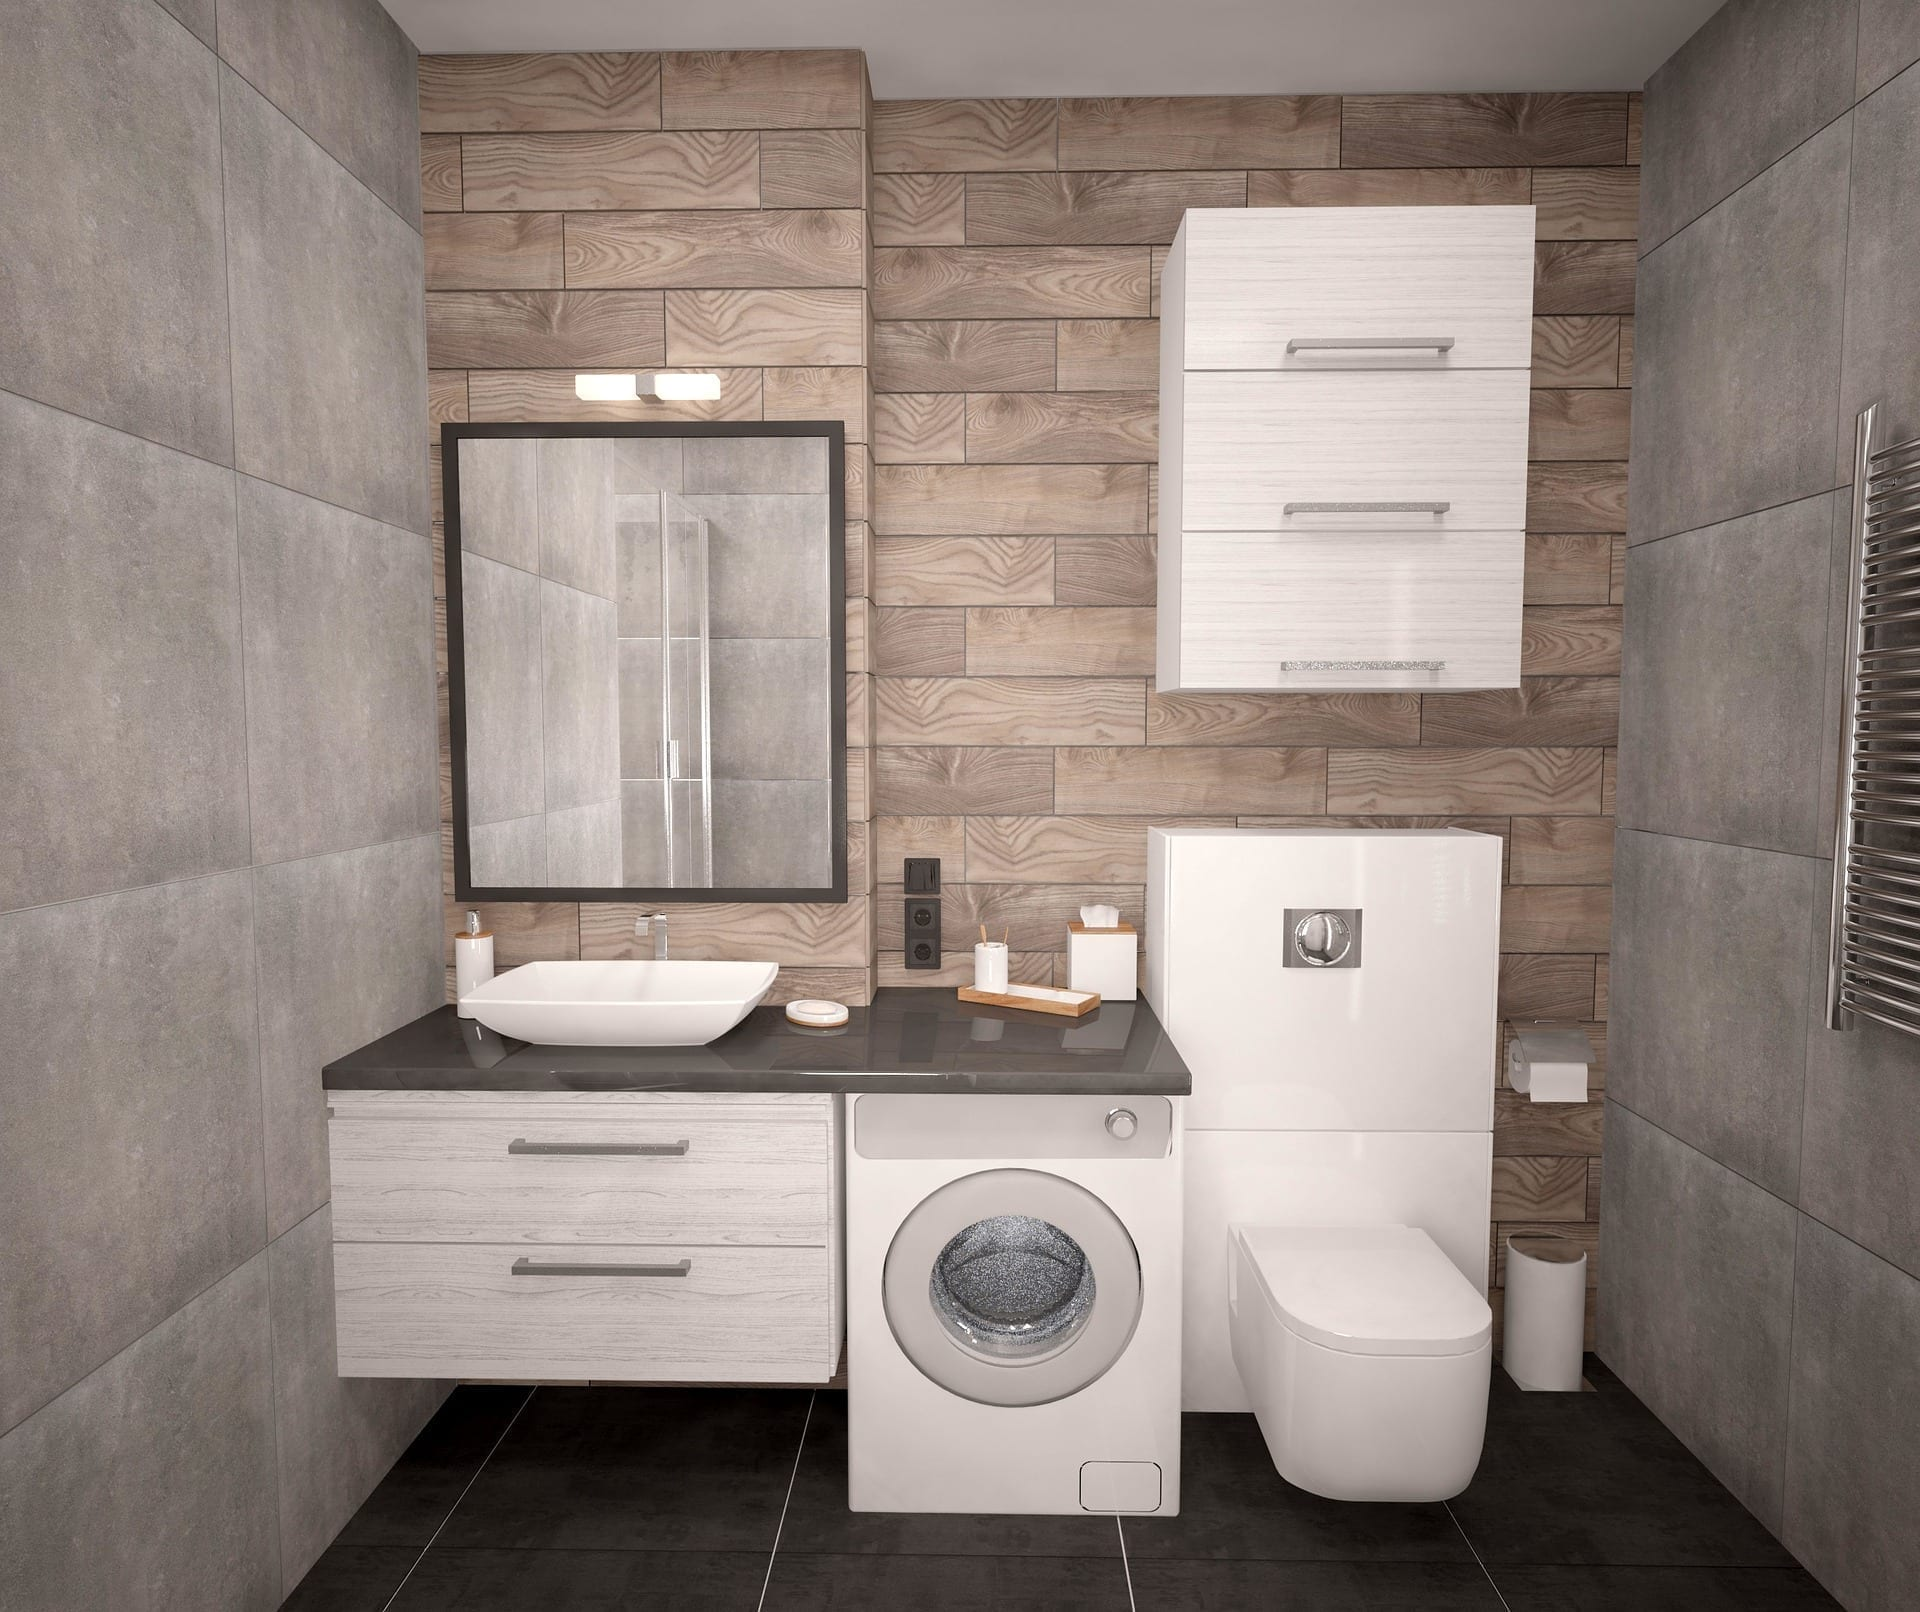 Modern bathroom with washer/dryer incorporated into design